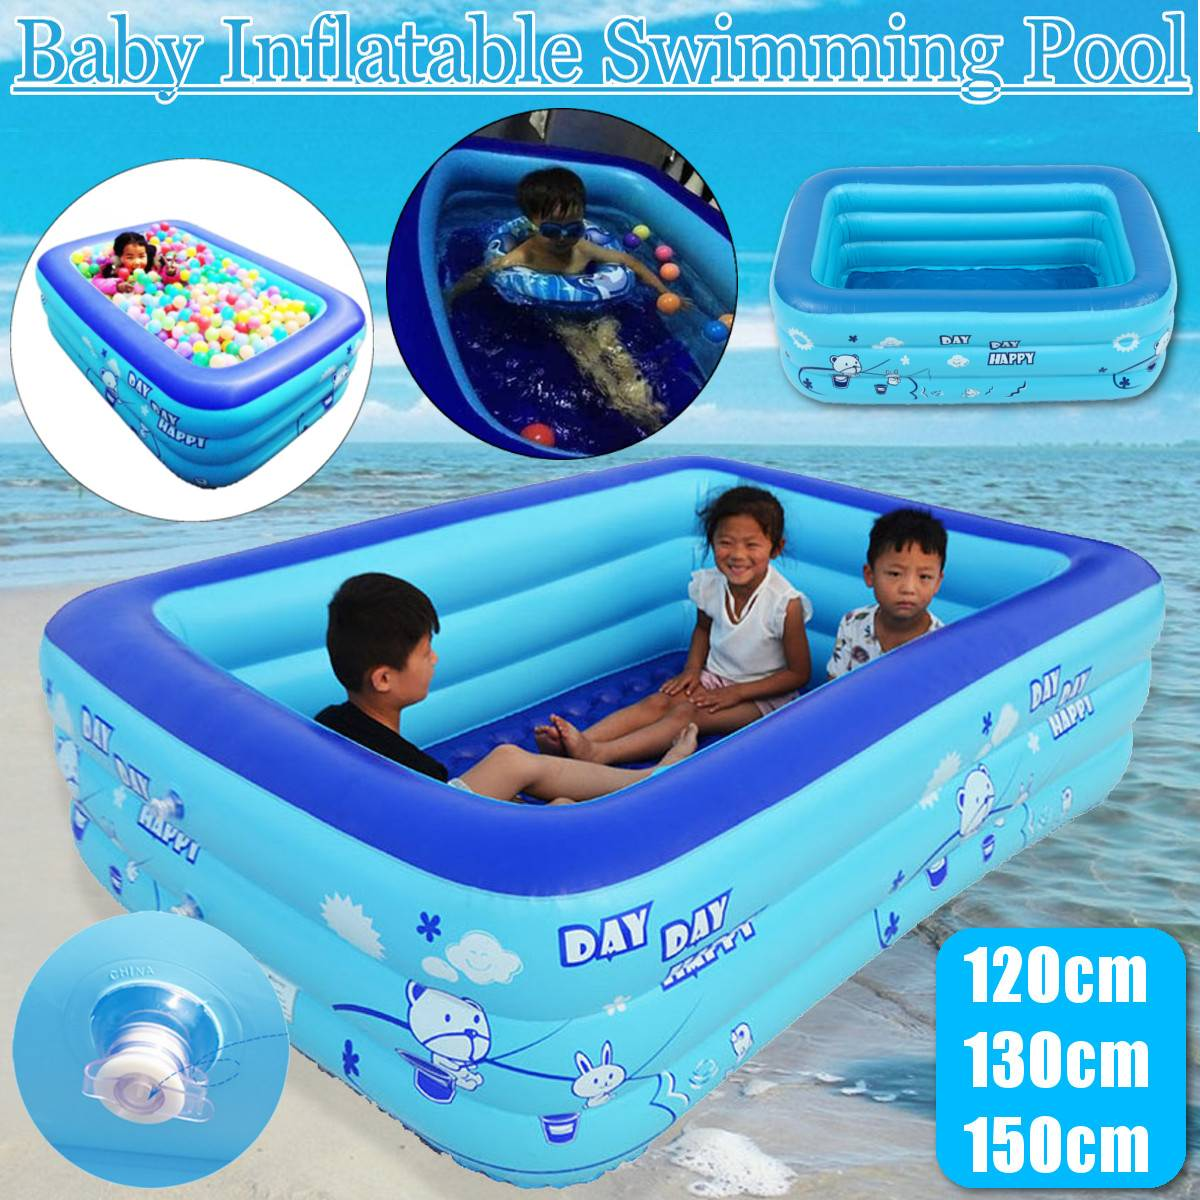 120/130/150cm Children Bathing Tub <font><b>Baby</b></font> Home Use Paddling <font><b>Pool</b></font> Inflatable Square Swimming <font><b>Pool</b></font> Kids Inflatable <font><b>Pool</b></font> Ocean <font><b>Ball</b></font> image